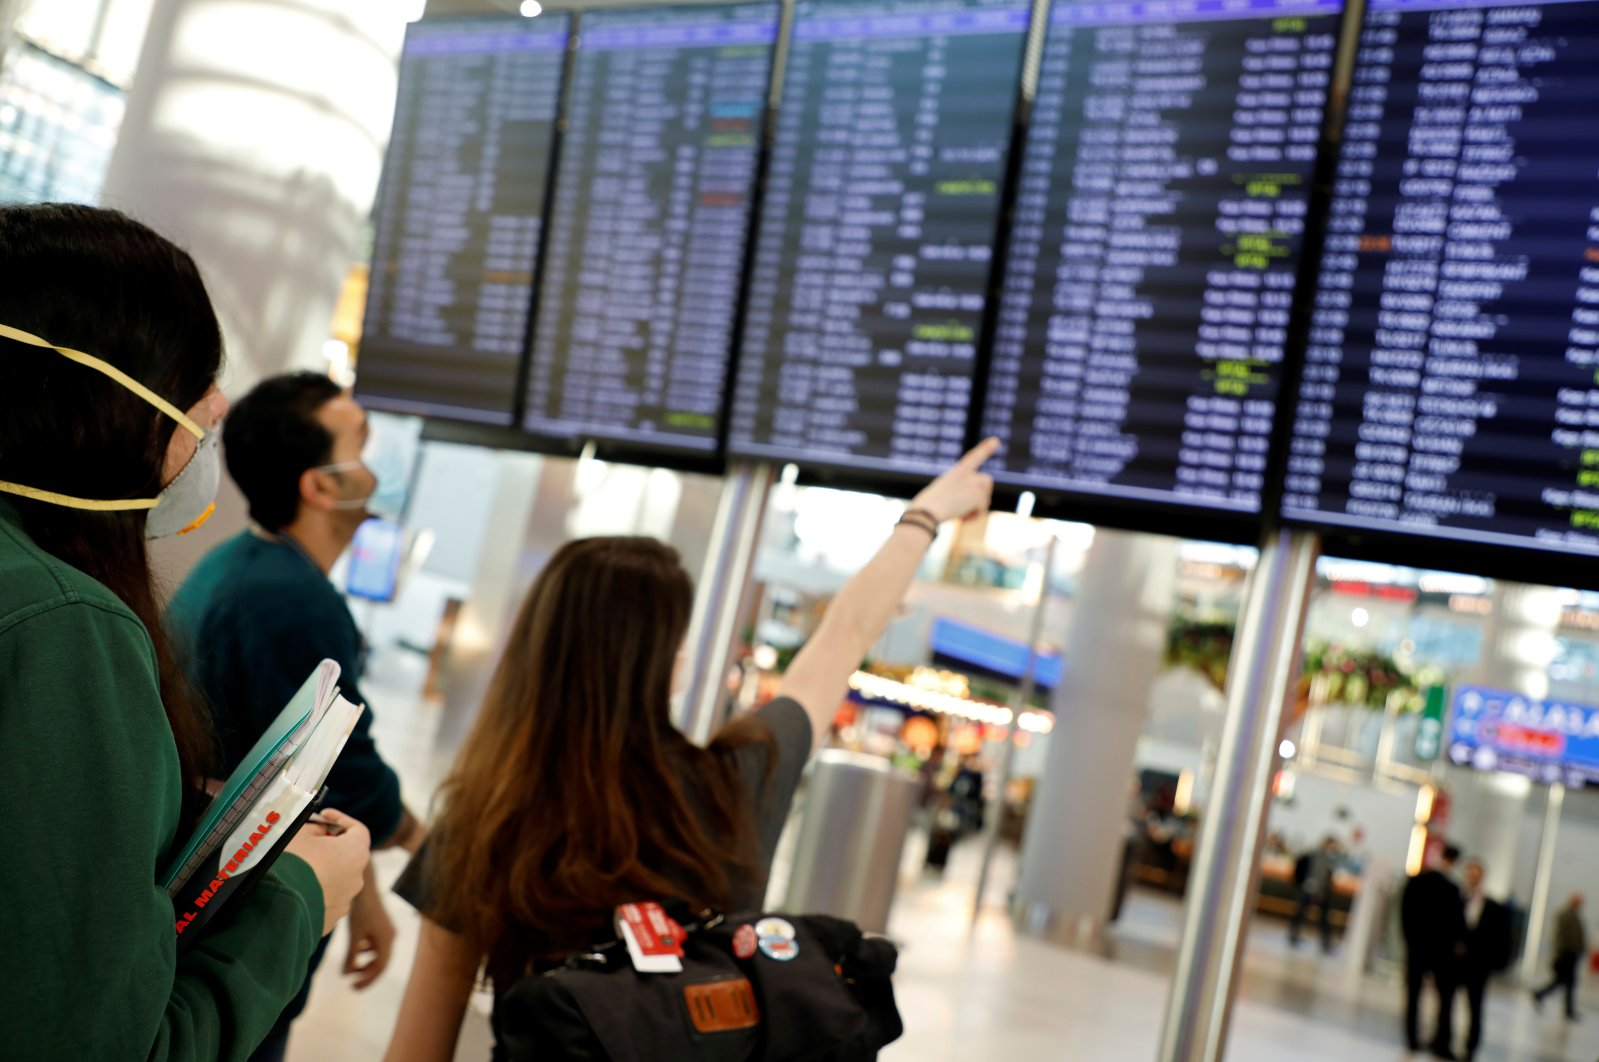 People wearing protective face masks in light of the coronavirus outbreak look at flight status information at Istanbul Airport, Turkey, March 13, 2020. (Reuters Photo)